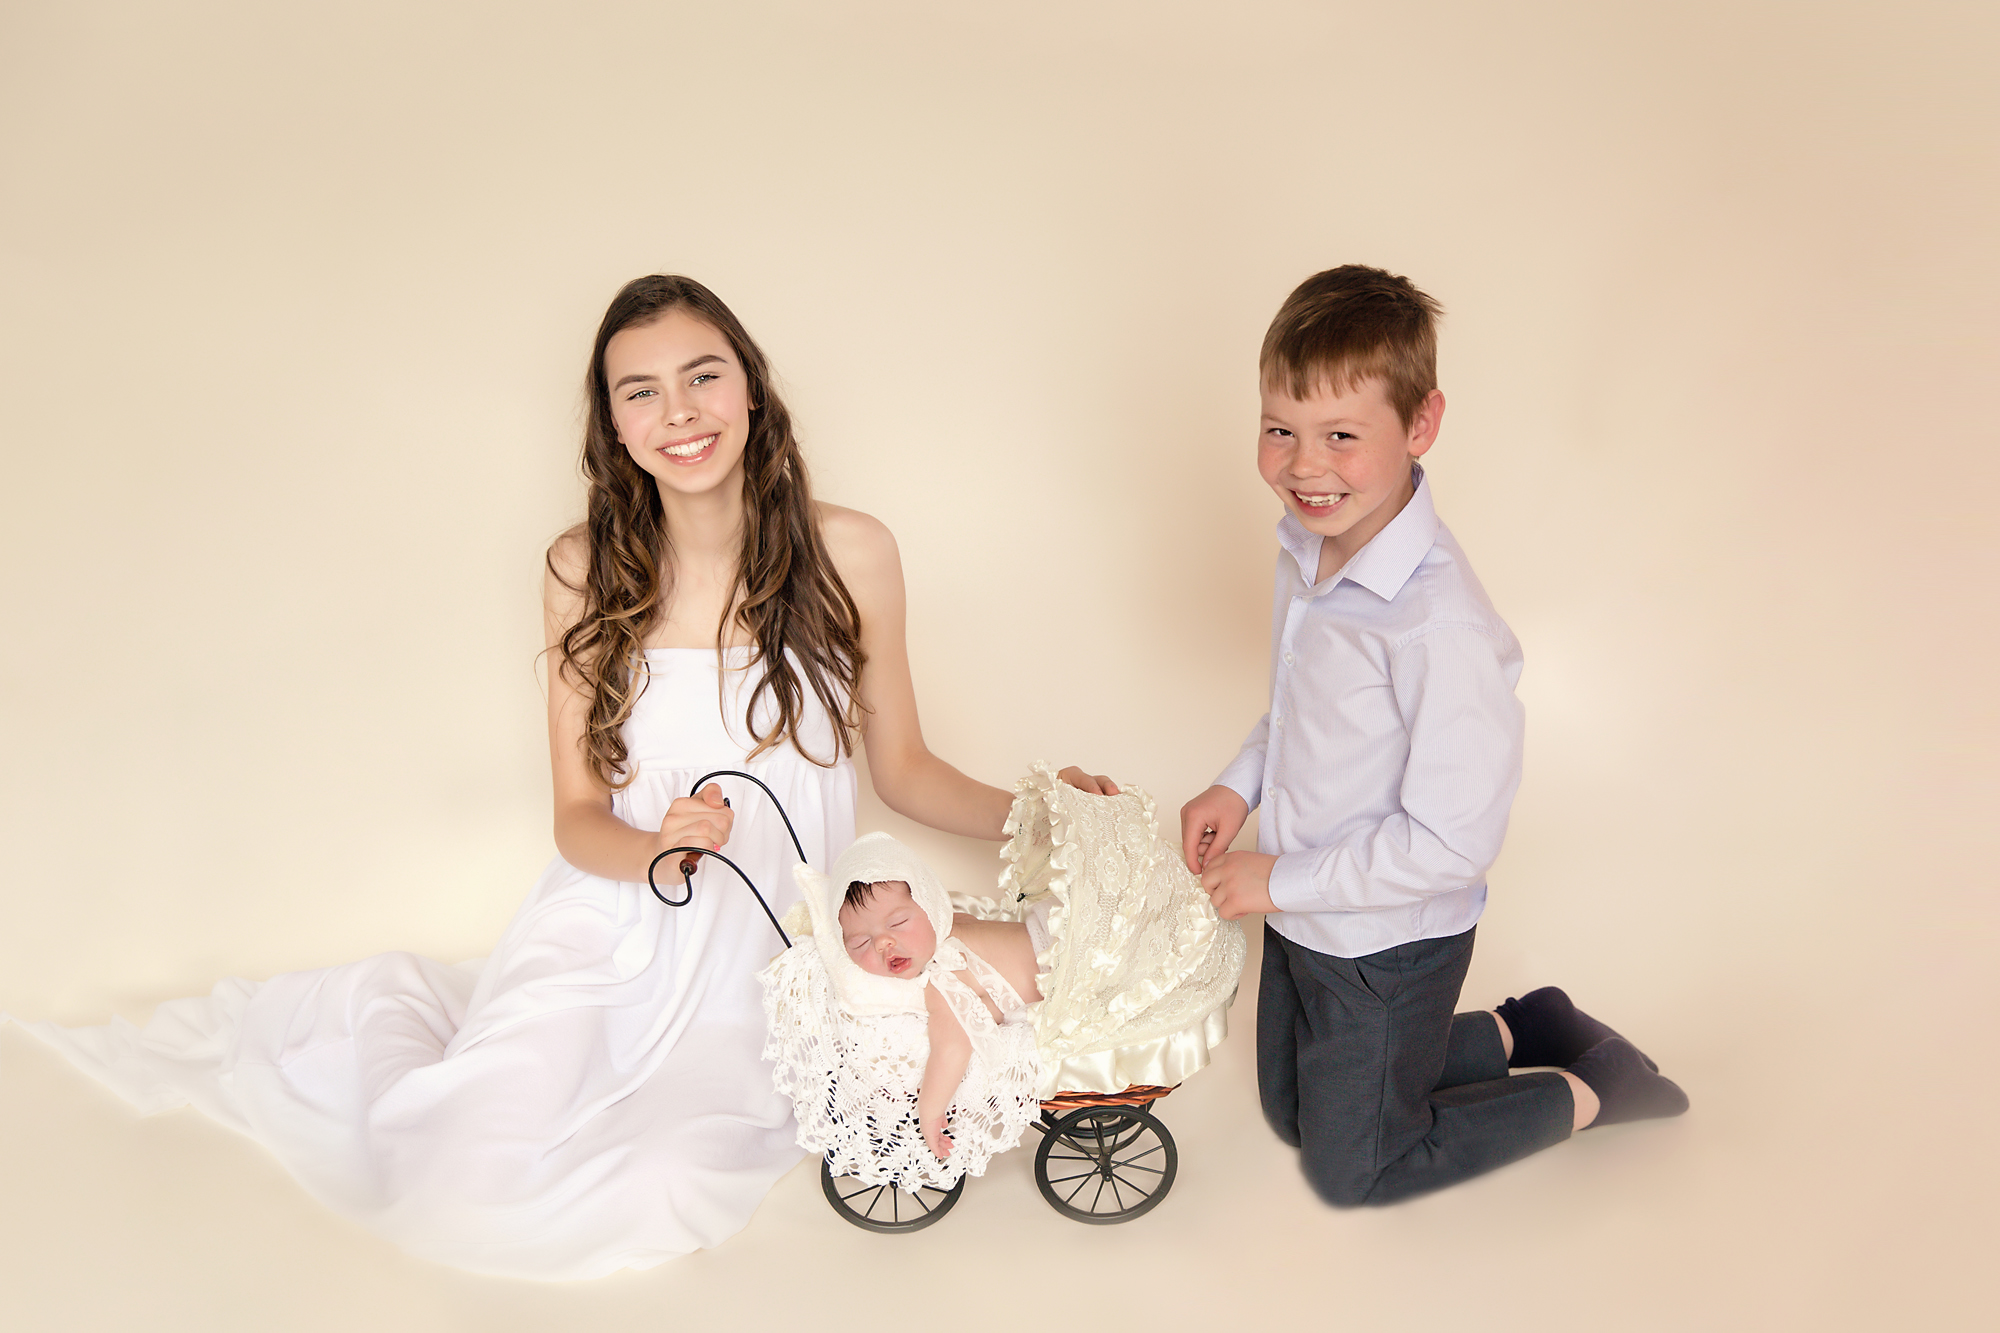 Newborn baby girl photoshoot idea. Calgary and Airdrie Newborn Photographer - Milashka Photography. Siblings are sitting beside a little stroller with their baby sister in it.